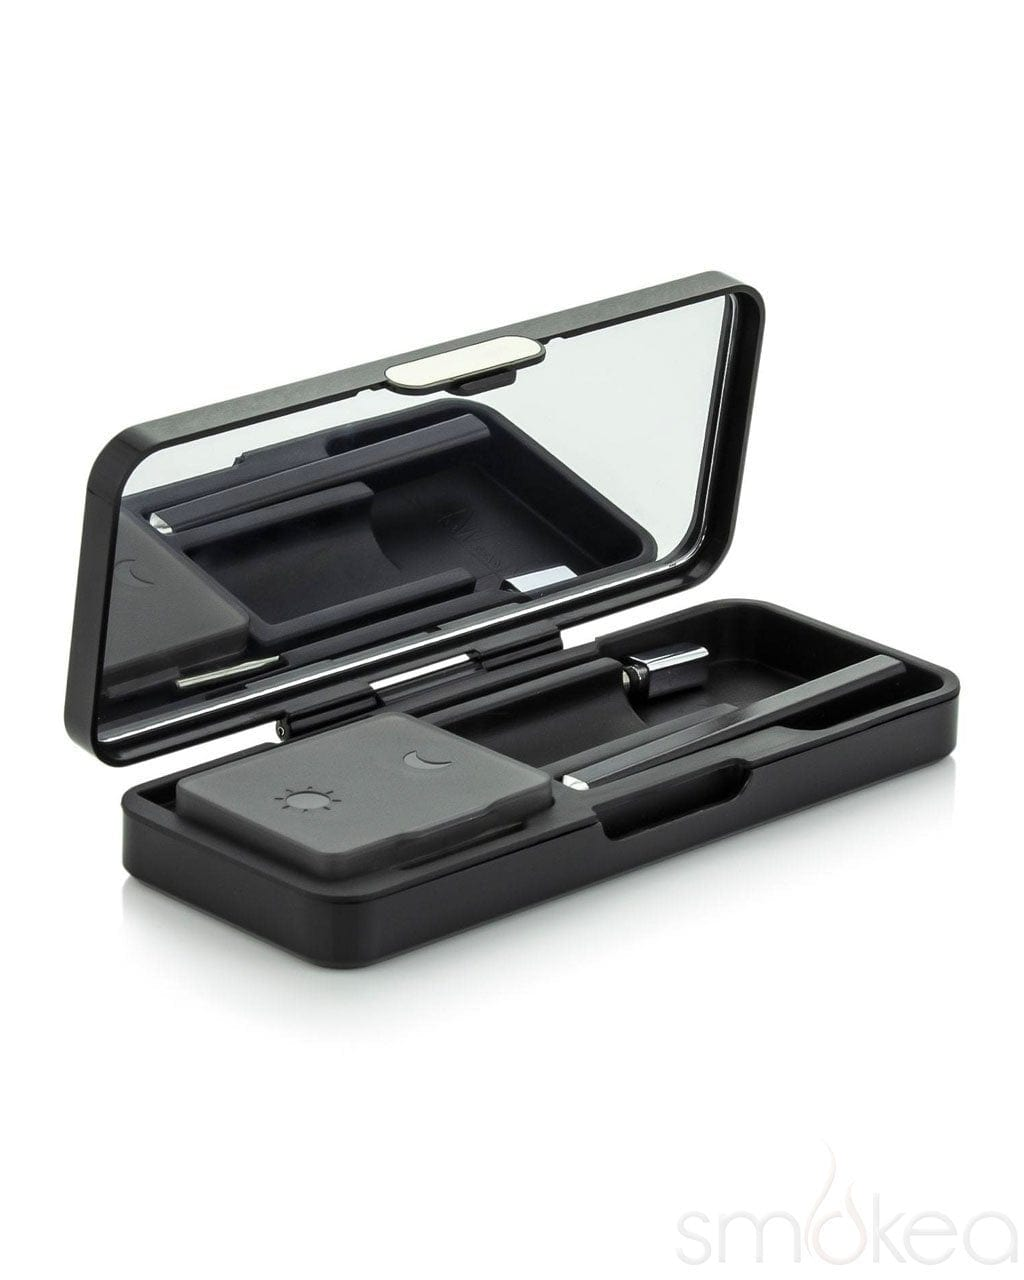 Jane West Compact Travel Kit - SMOKEA